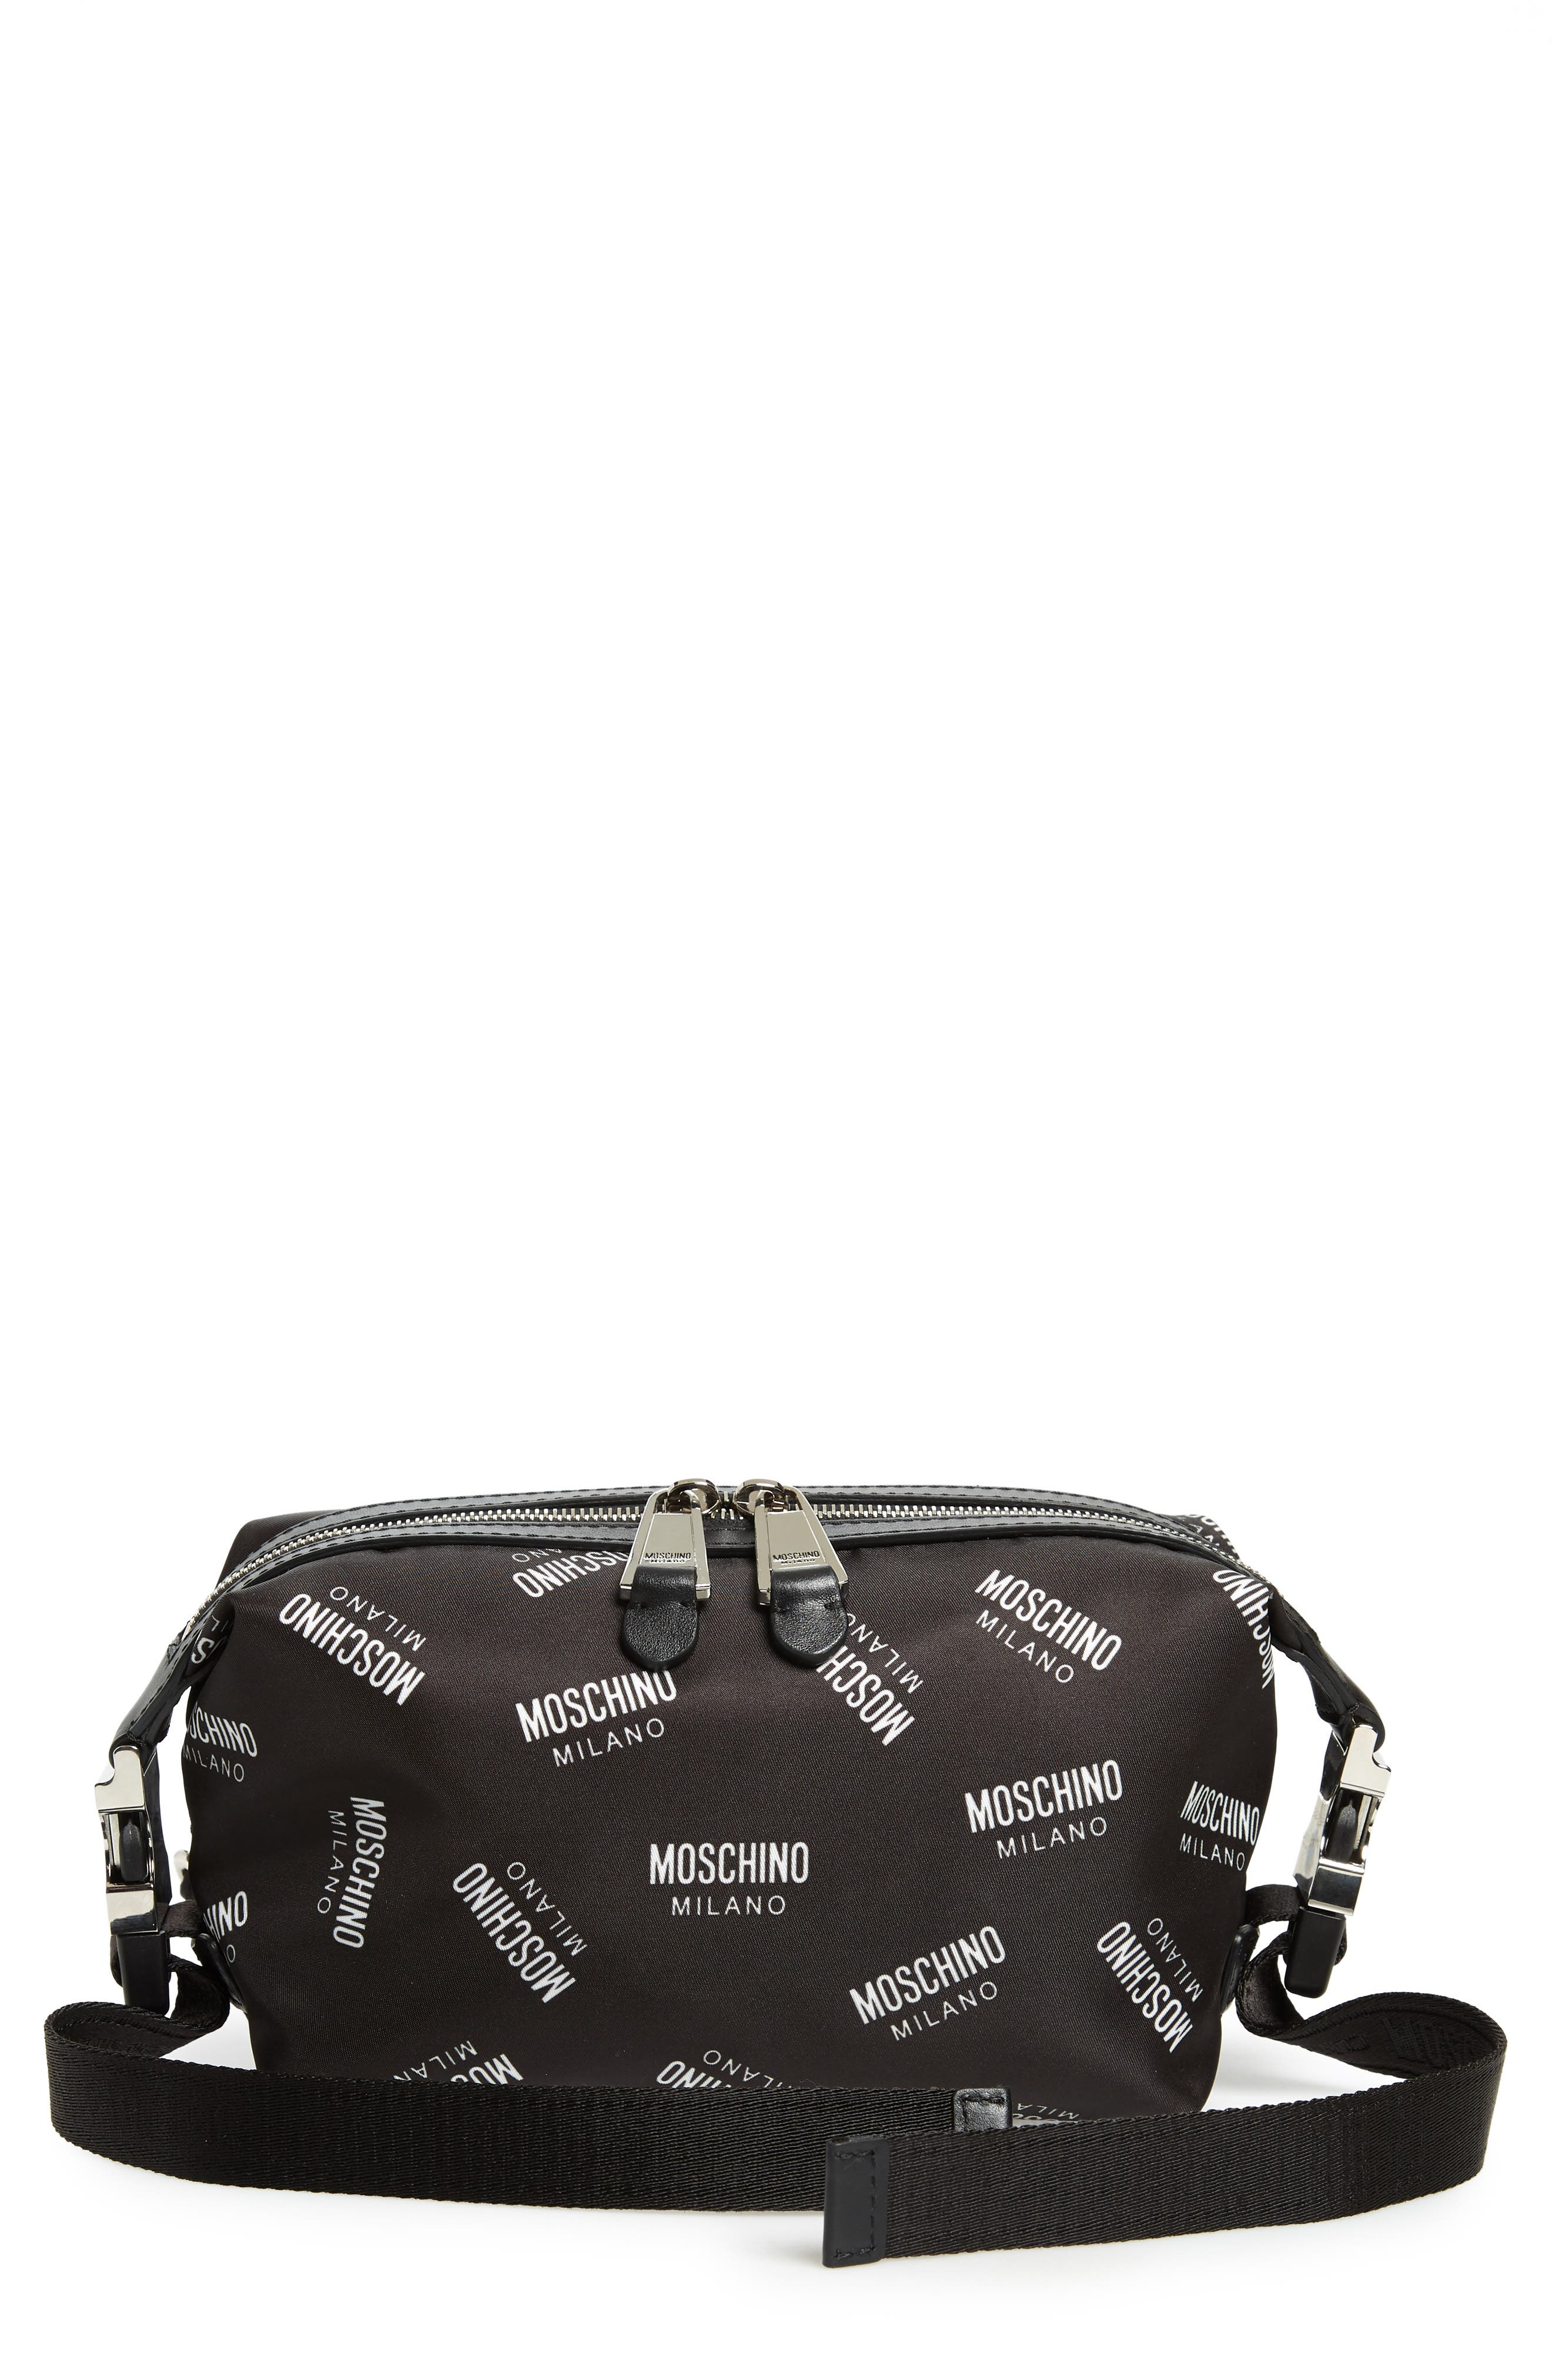 9c650f01b1 Moschino Handbags & Wallets for Women | Nordstrom